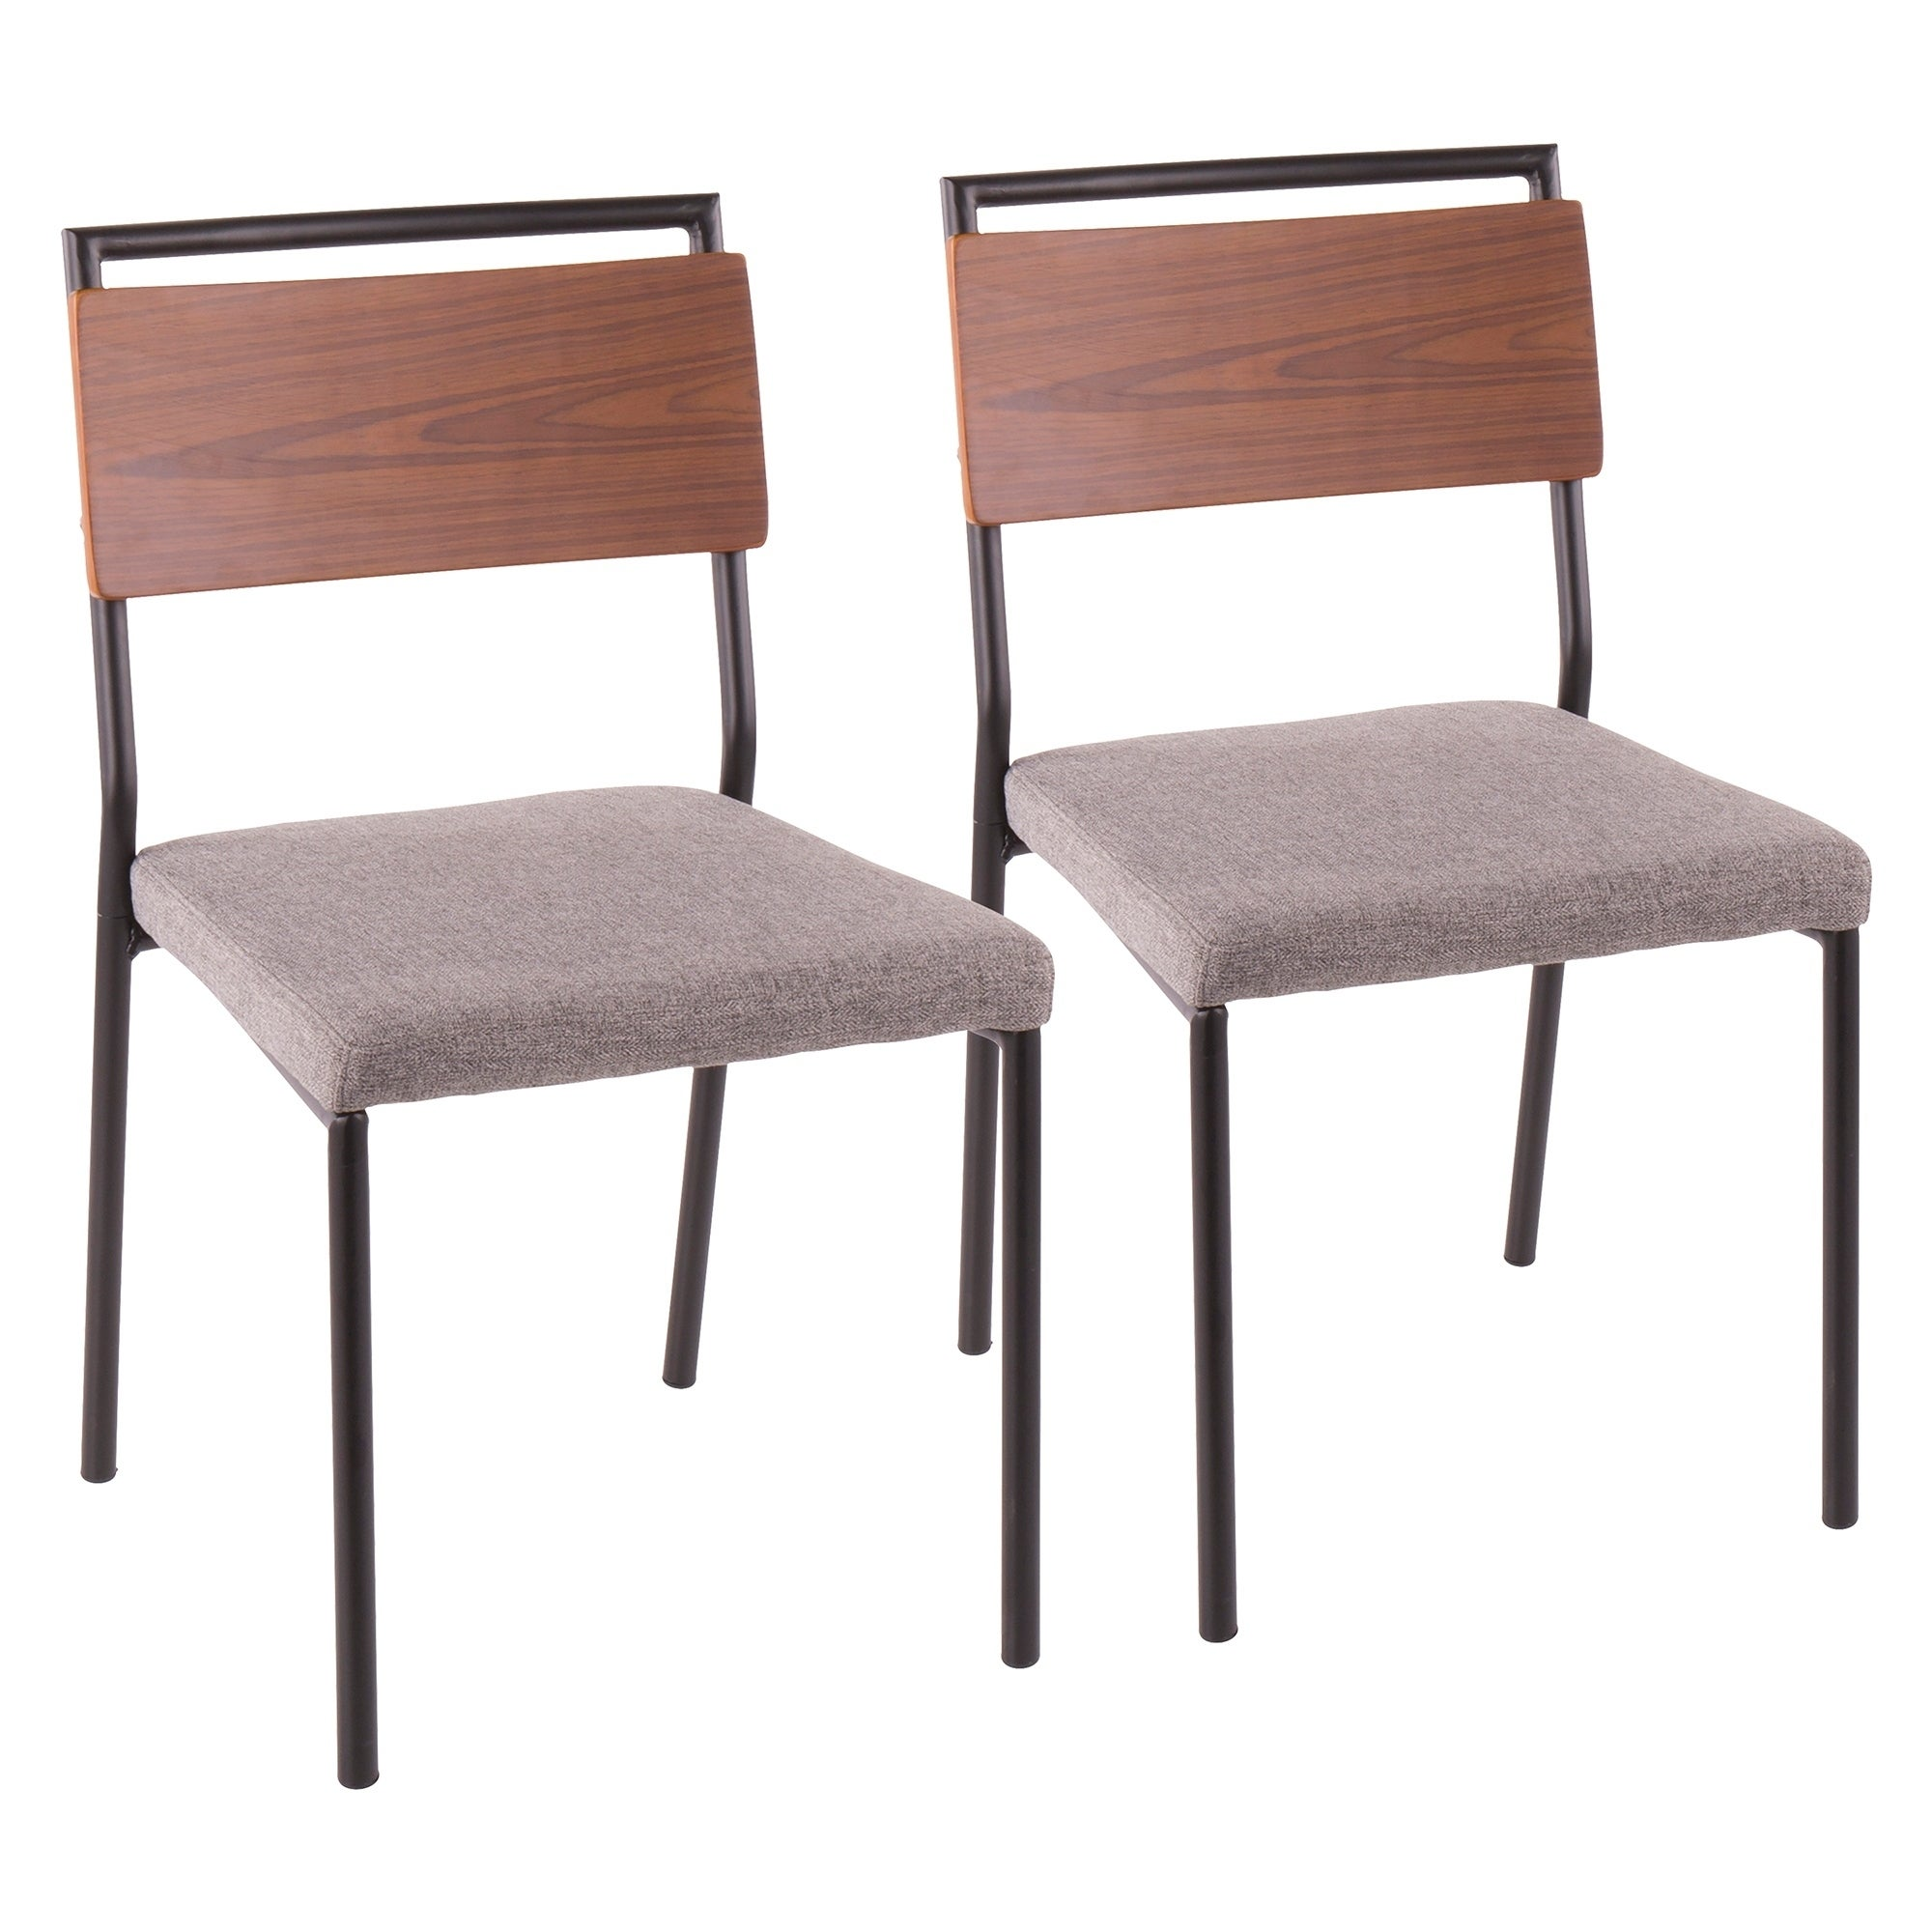 Fiji Upholstered Dining Chair With Wood Accents Set Of 2